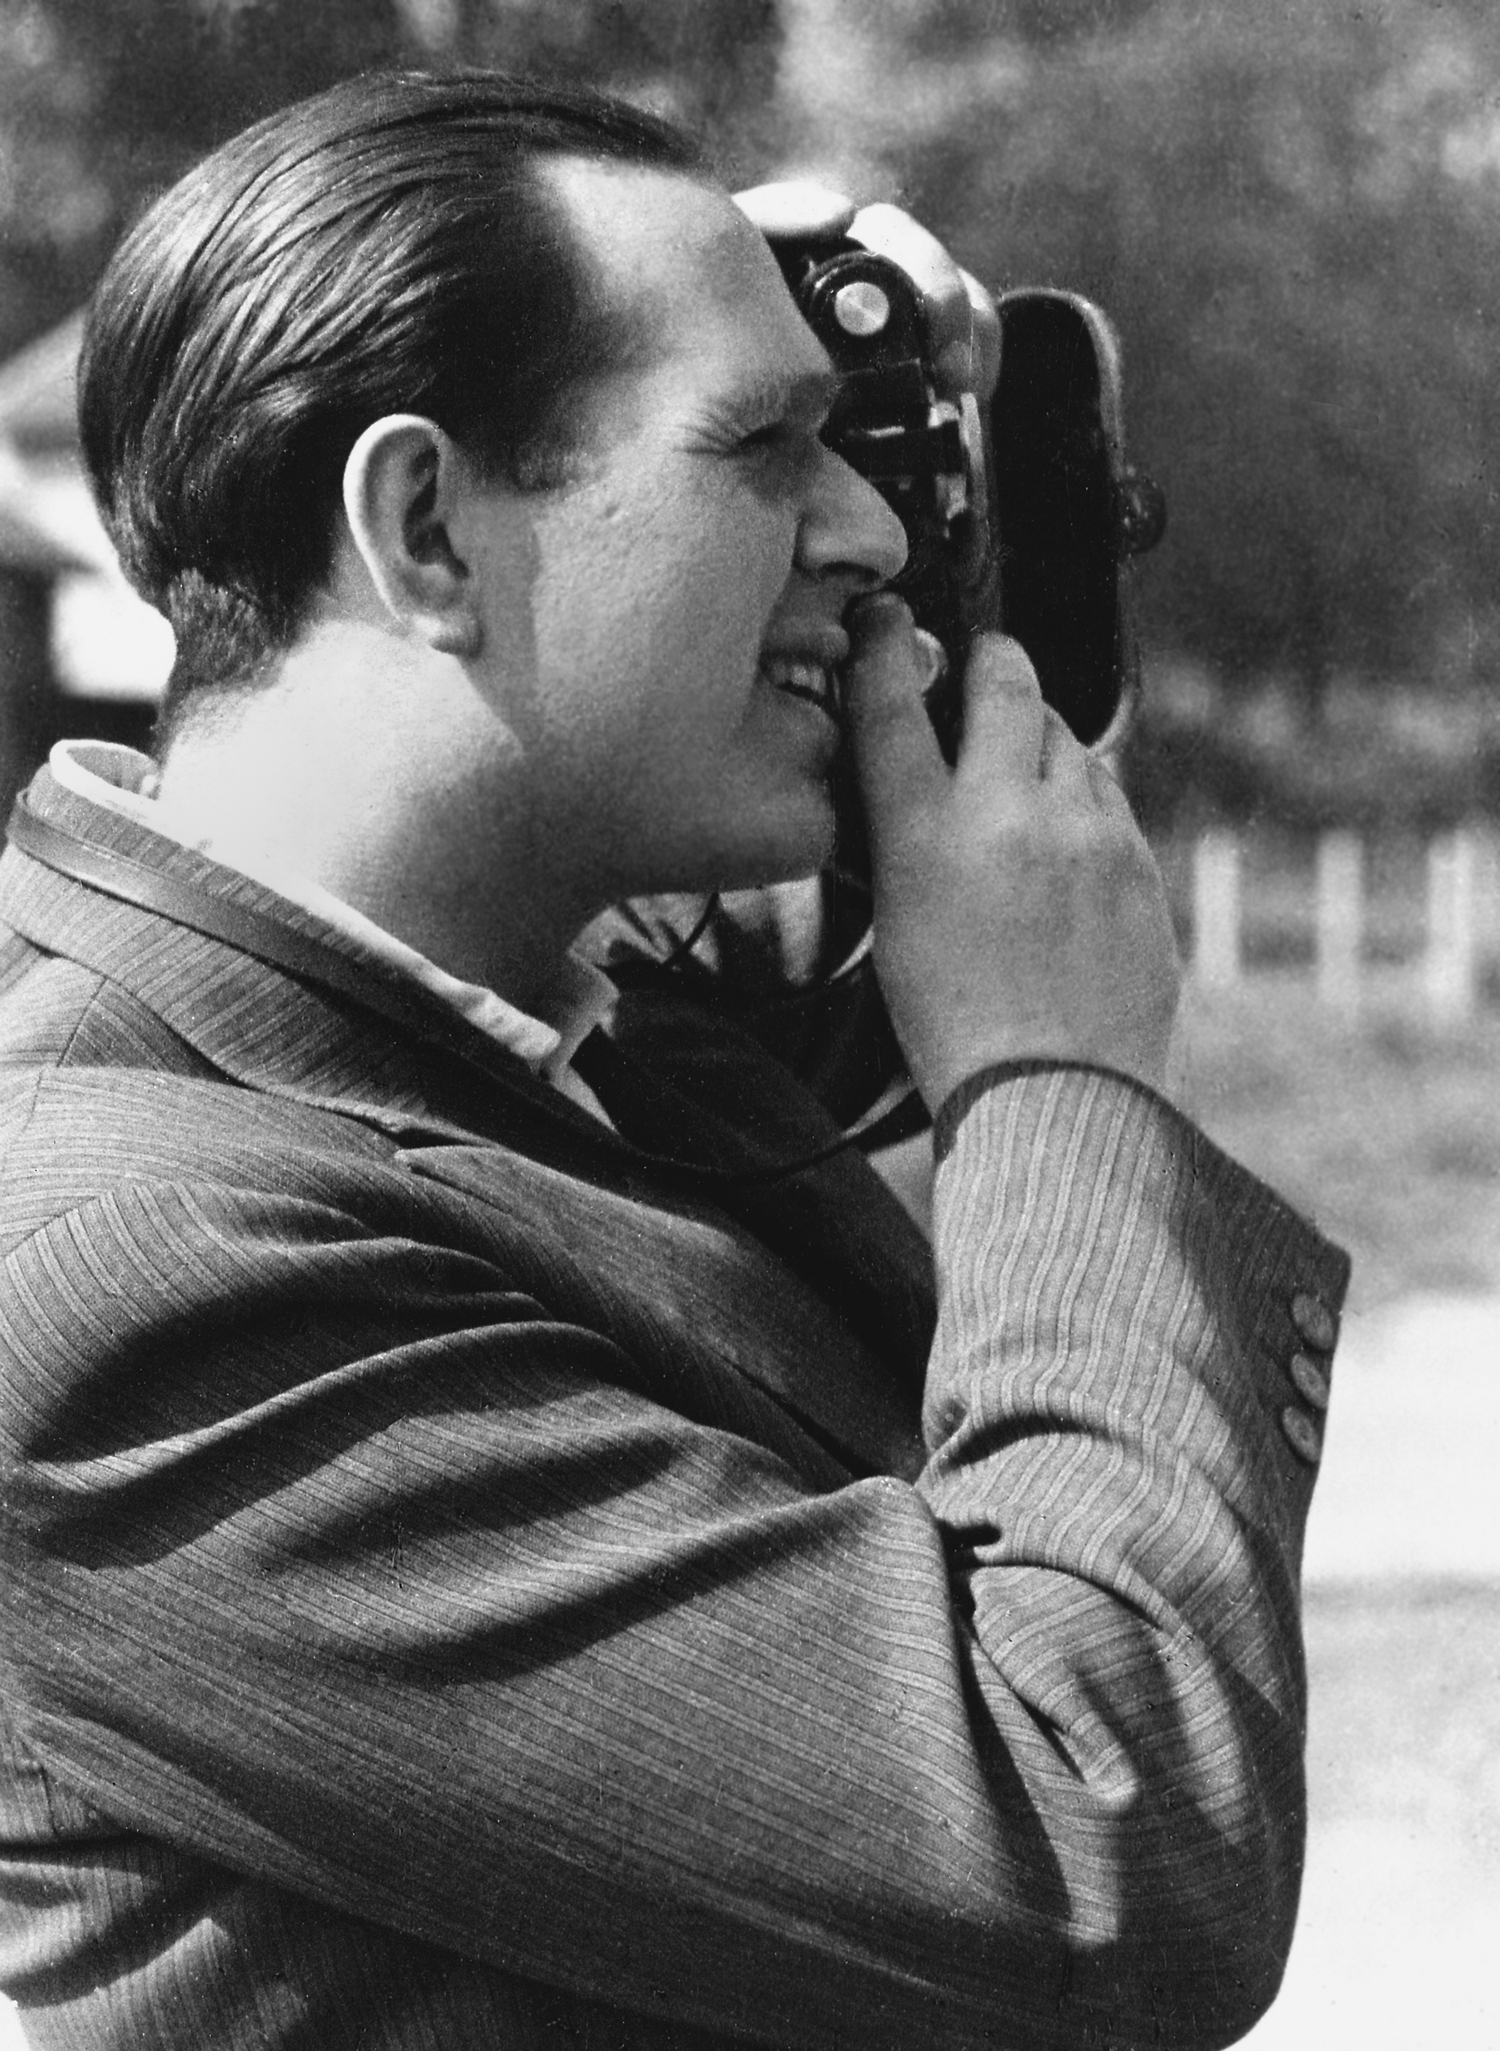 Image of Fred Stein from Wikidata